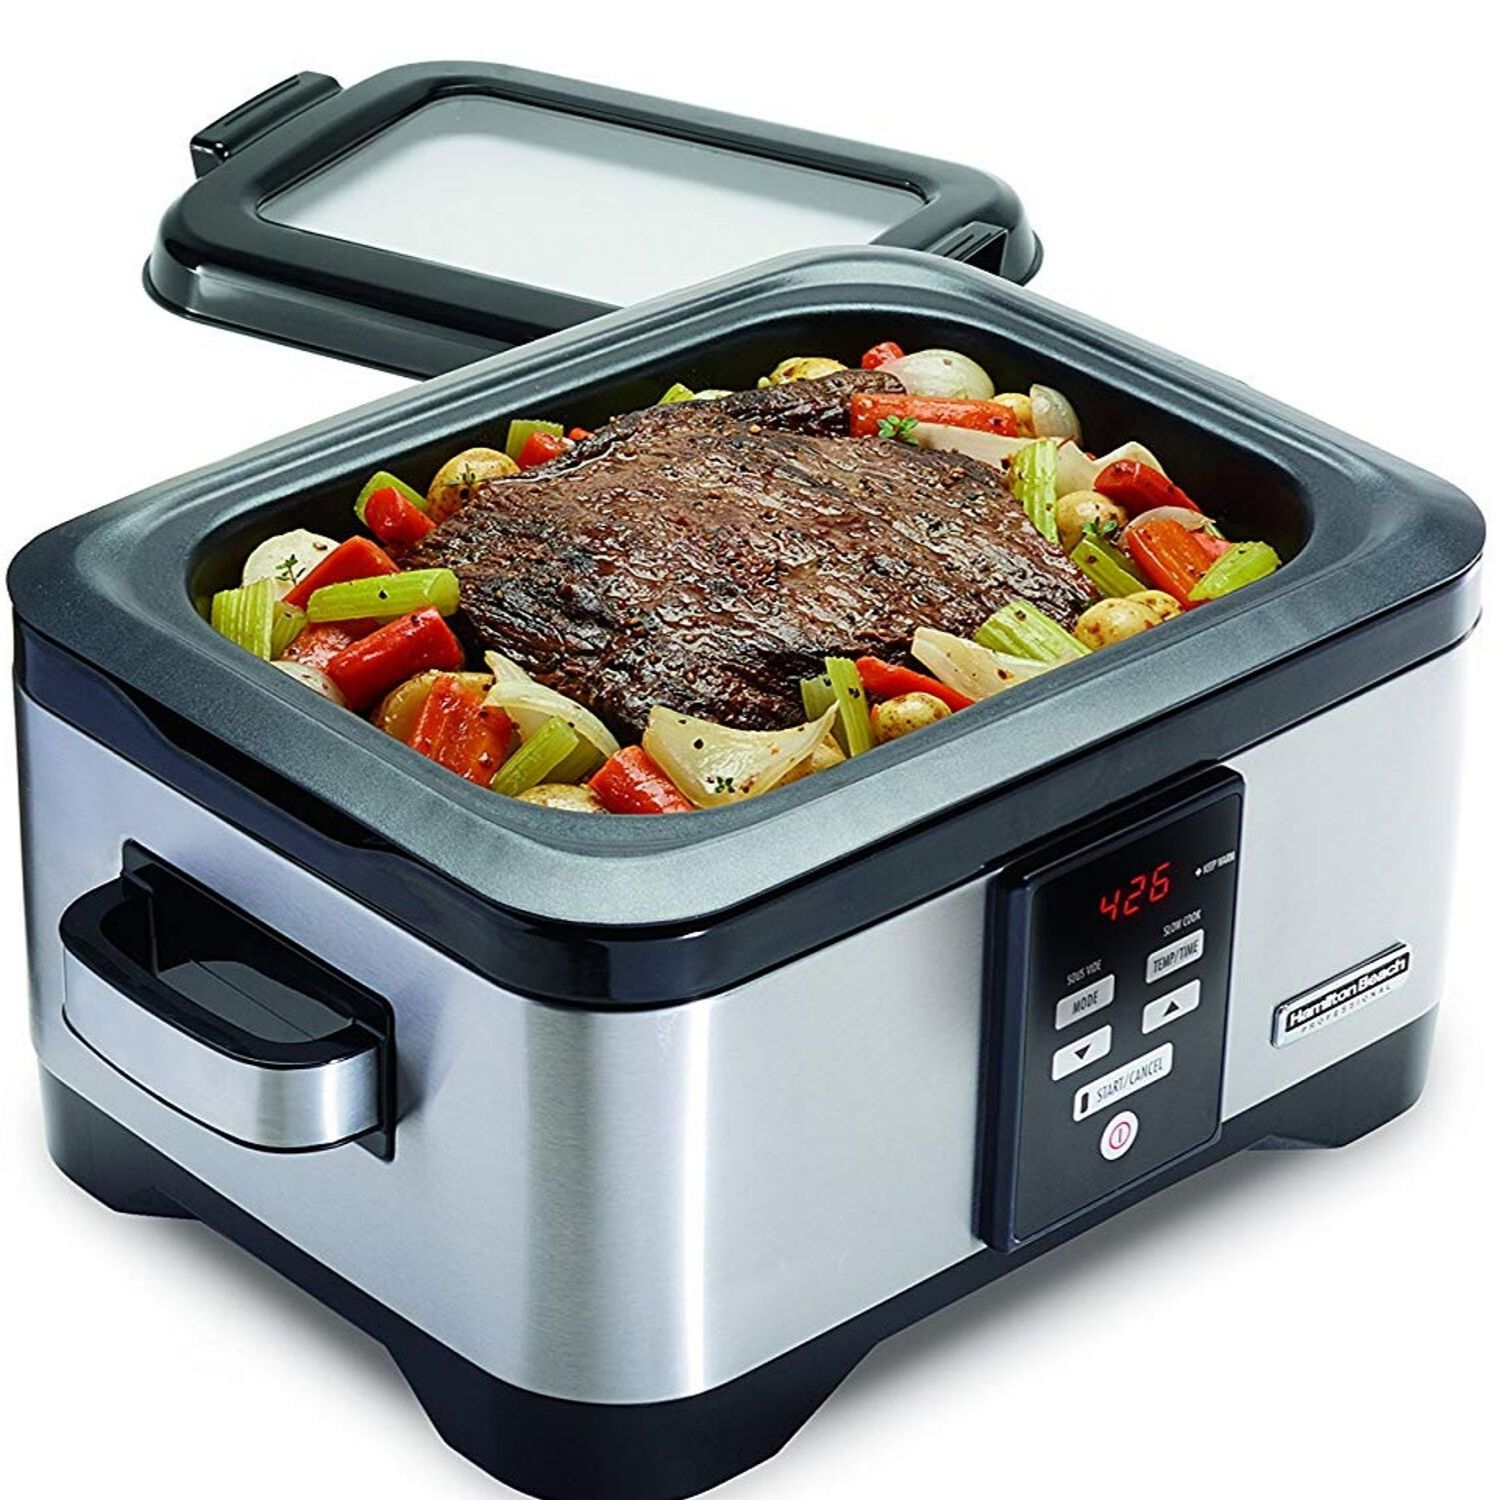 Hamilton Beach Professional Sous Vide Water Oven & Slow Cooker